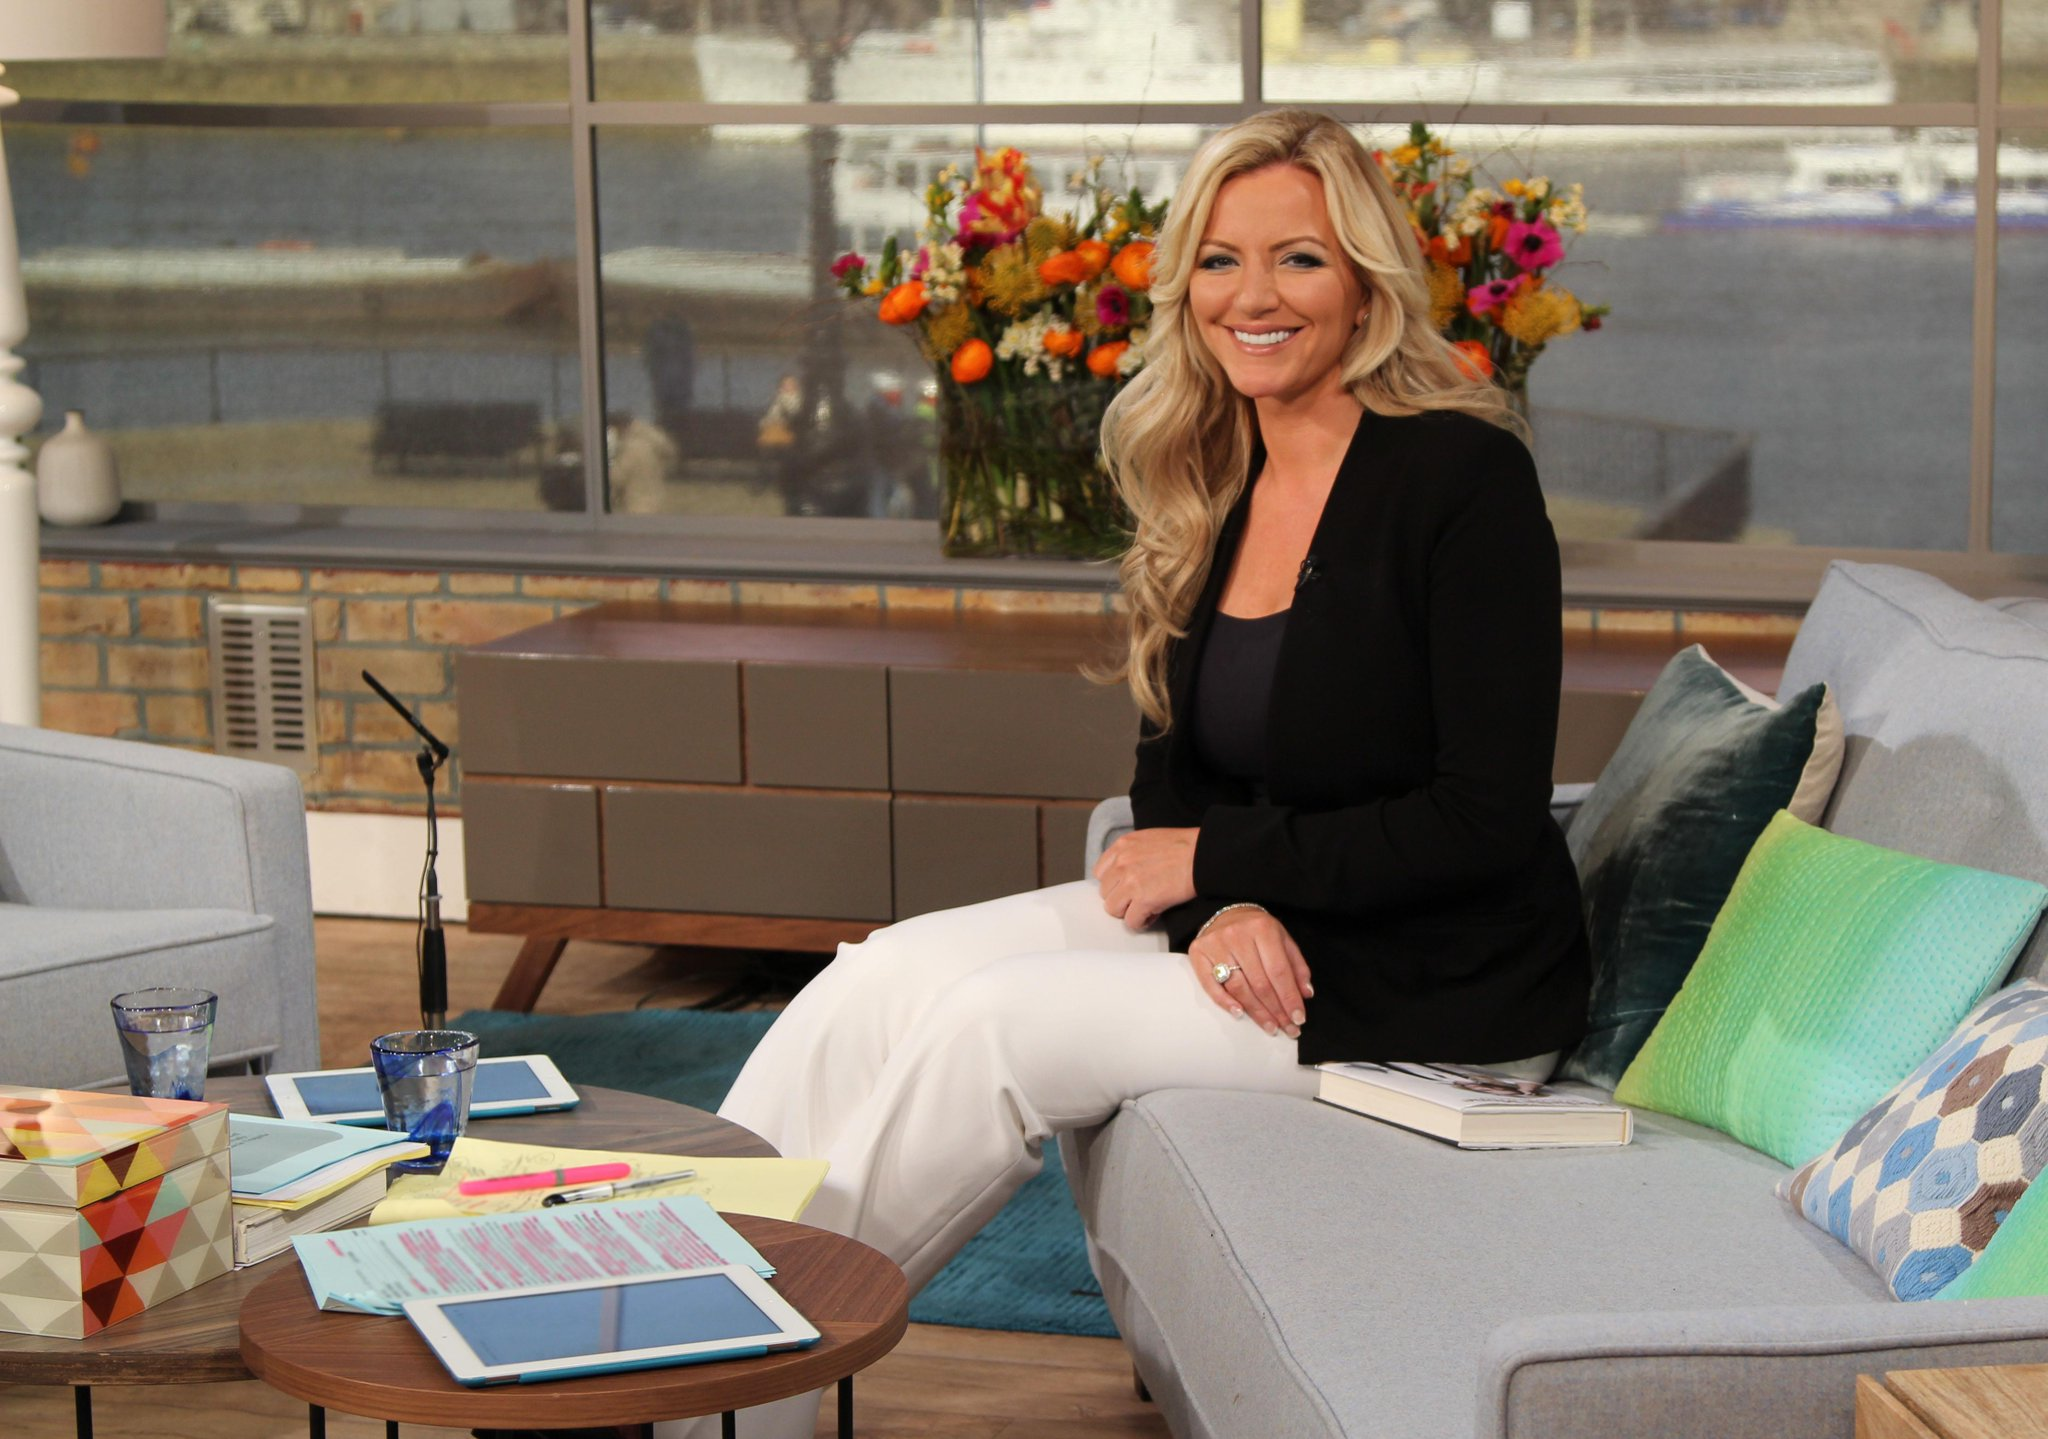 RT @itvthismorning: Bra tycoon @MichelleMone believes you can have it all! http://t.co/pkN6Pw5EPb #MichelleMone #MyFightToTheTop http://t.c…